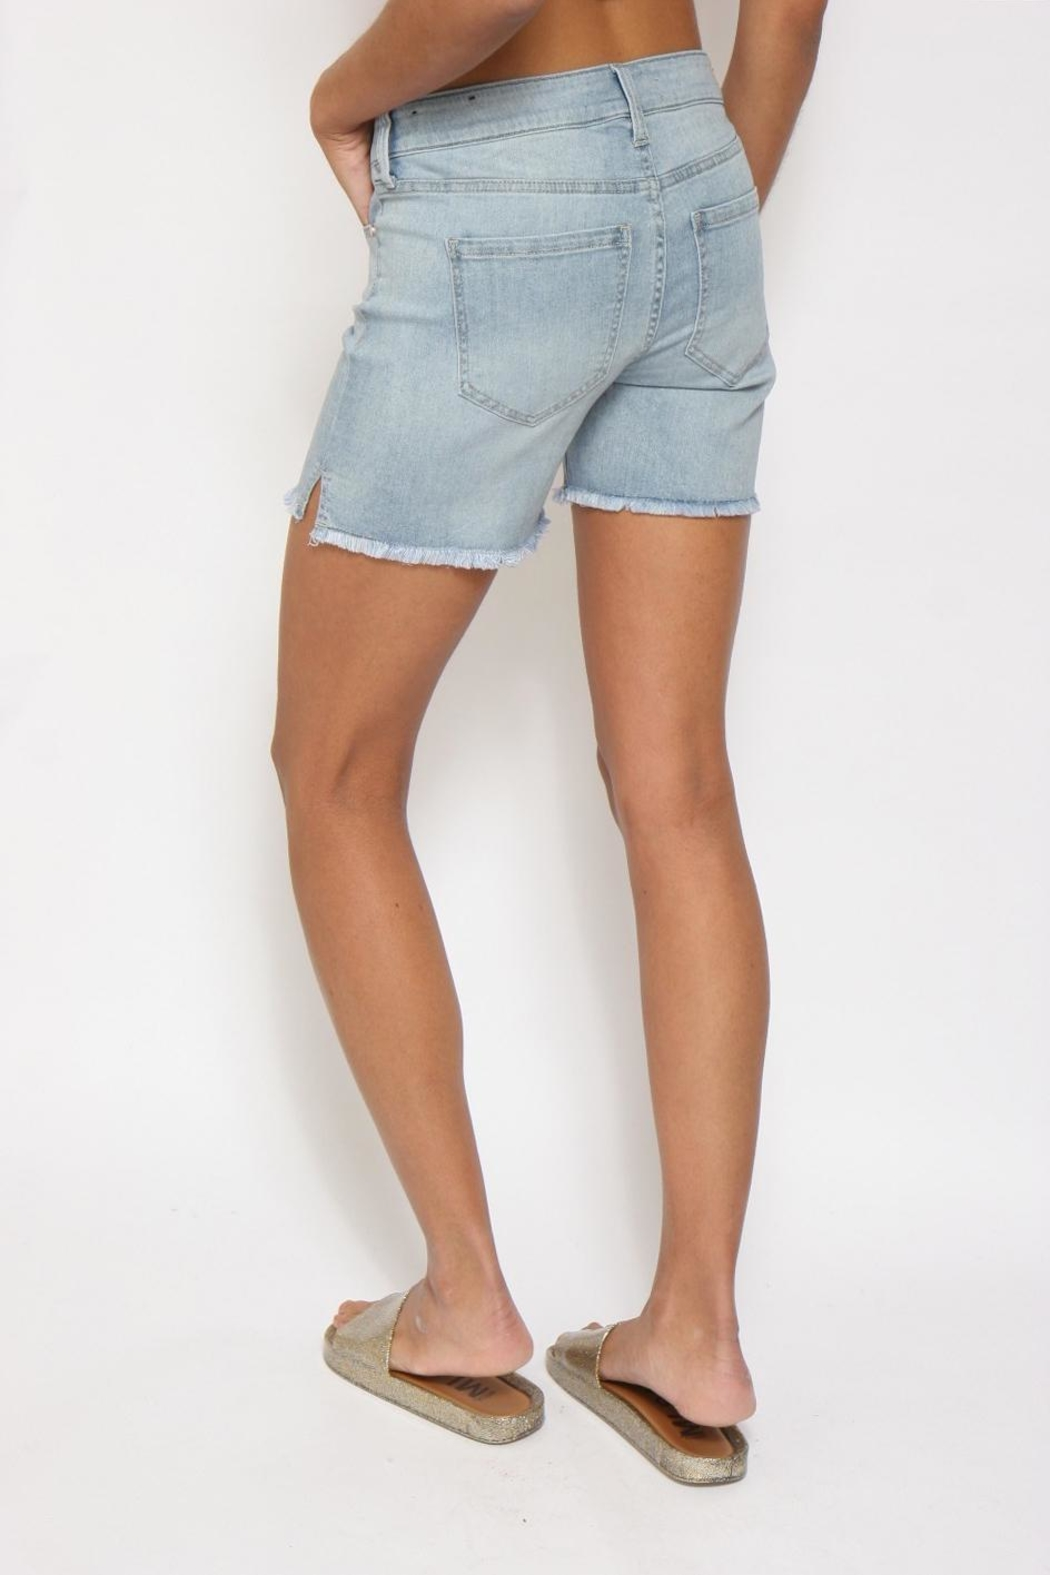 Liverpool Jean Company Cut-Off Jean Shorts - Side Cropped Image